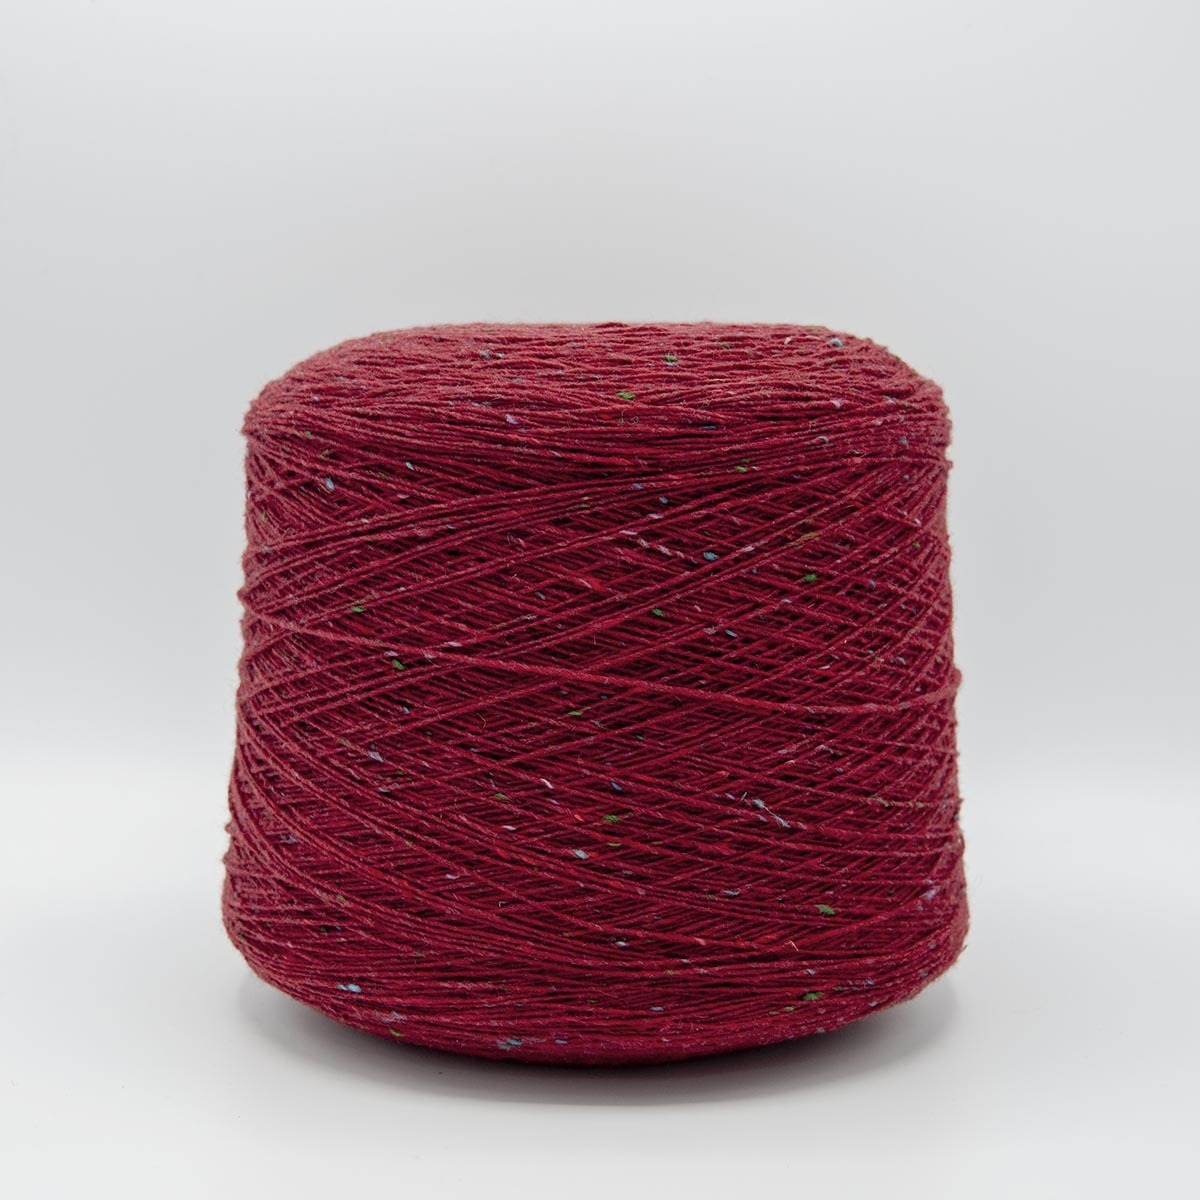 Knoll Yarns Soft Donegal (одинарный твид) - 5567